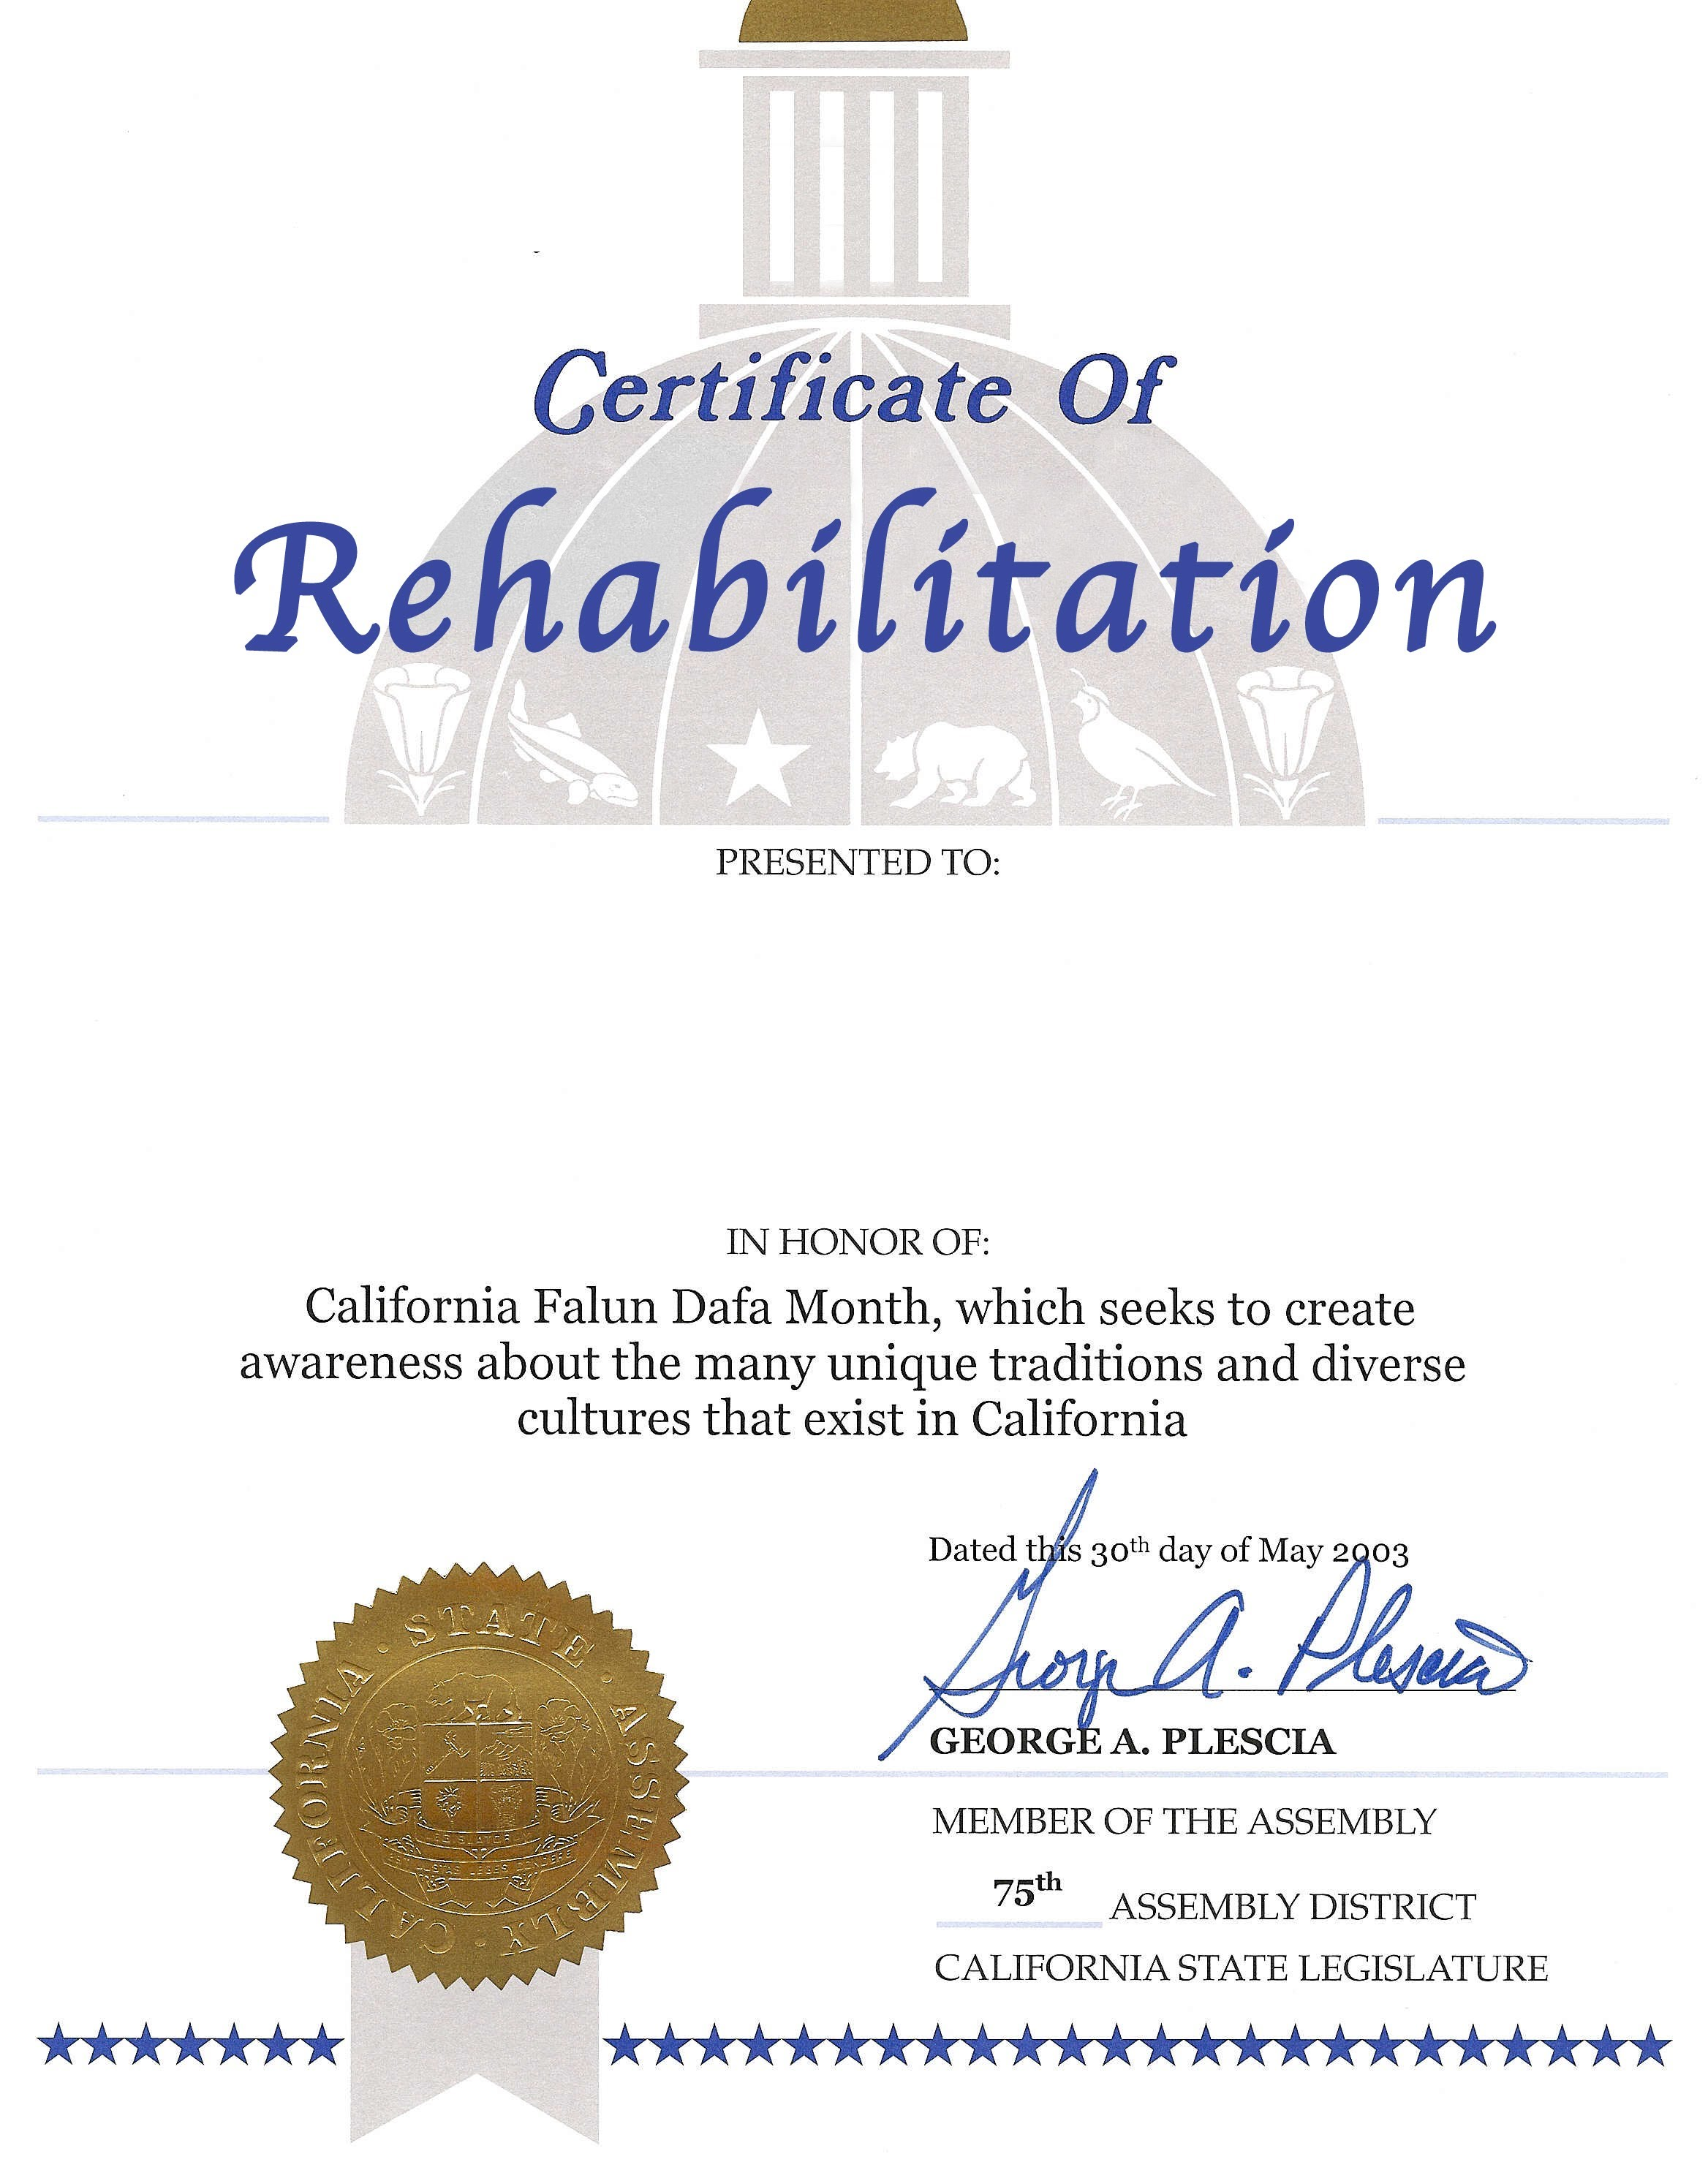 Certificate Of Rehabilitation Certificate Of